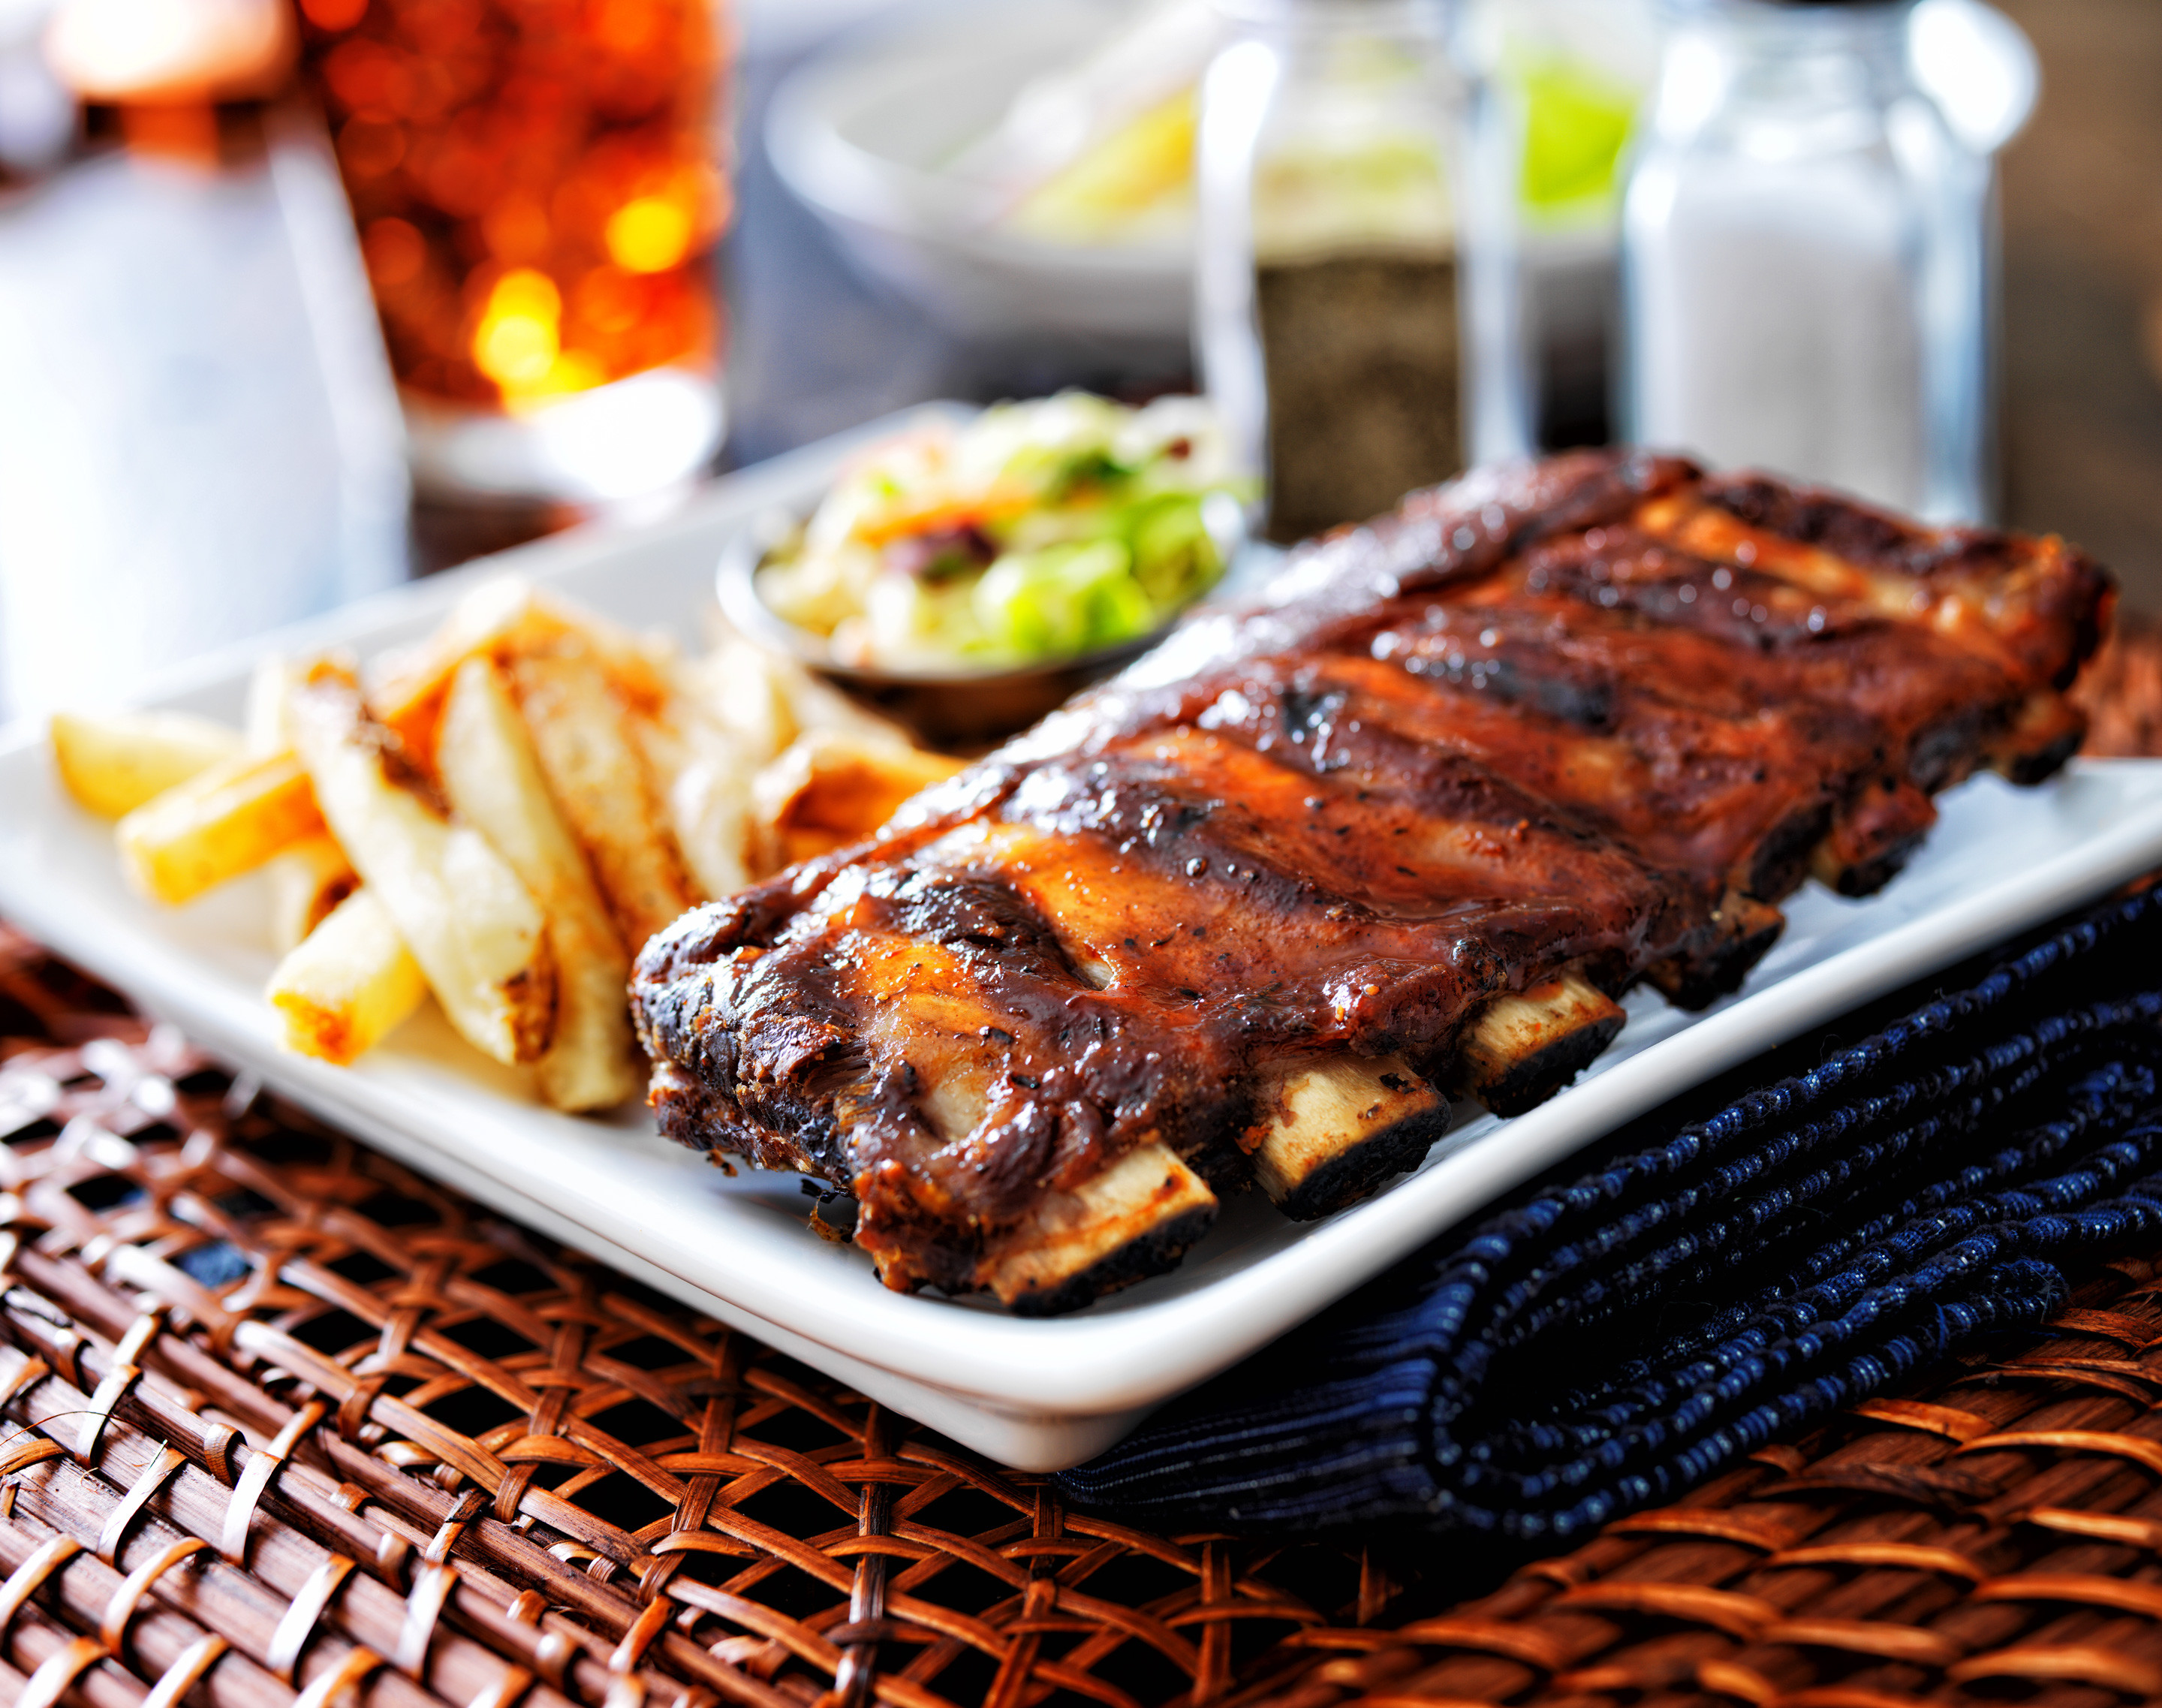 Best Bbq Sauce For Ribs  Roasted Strawberry BBQ Sauce Florida Strawberry